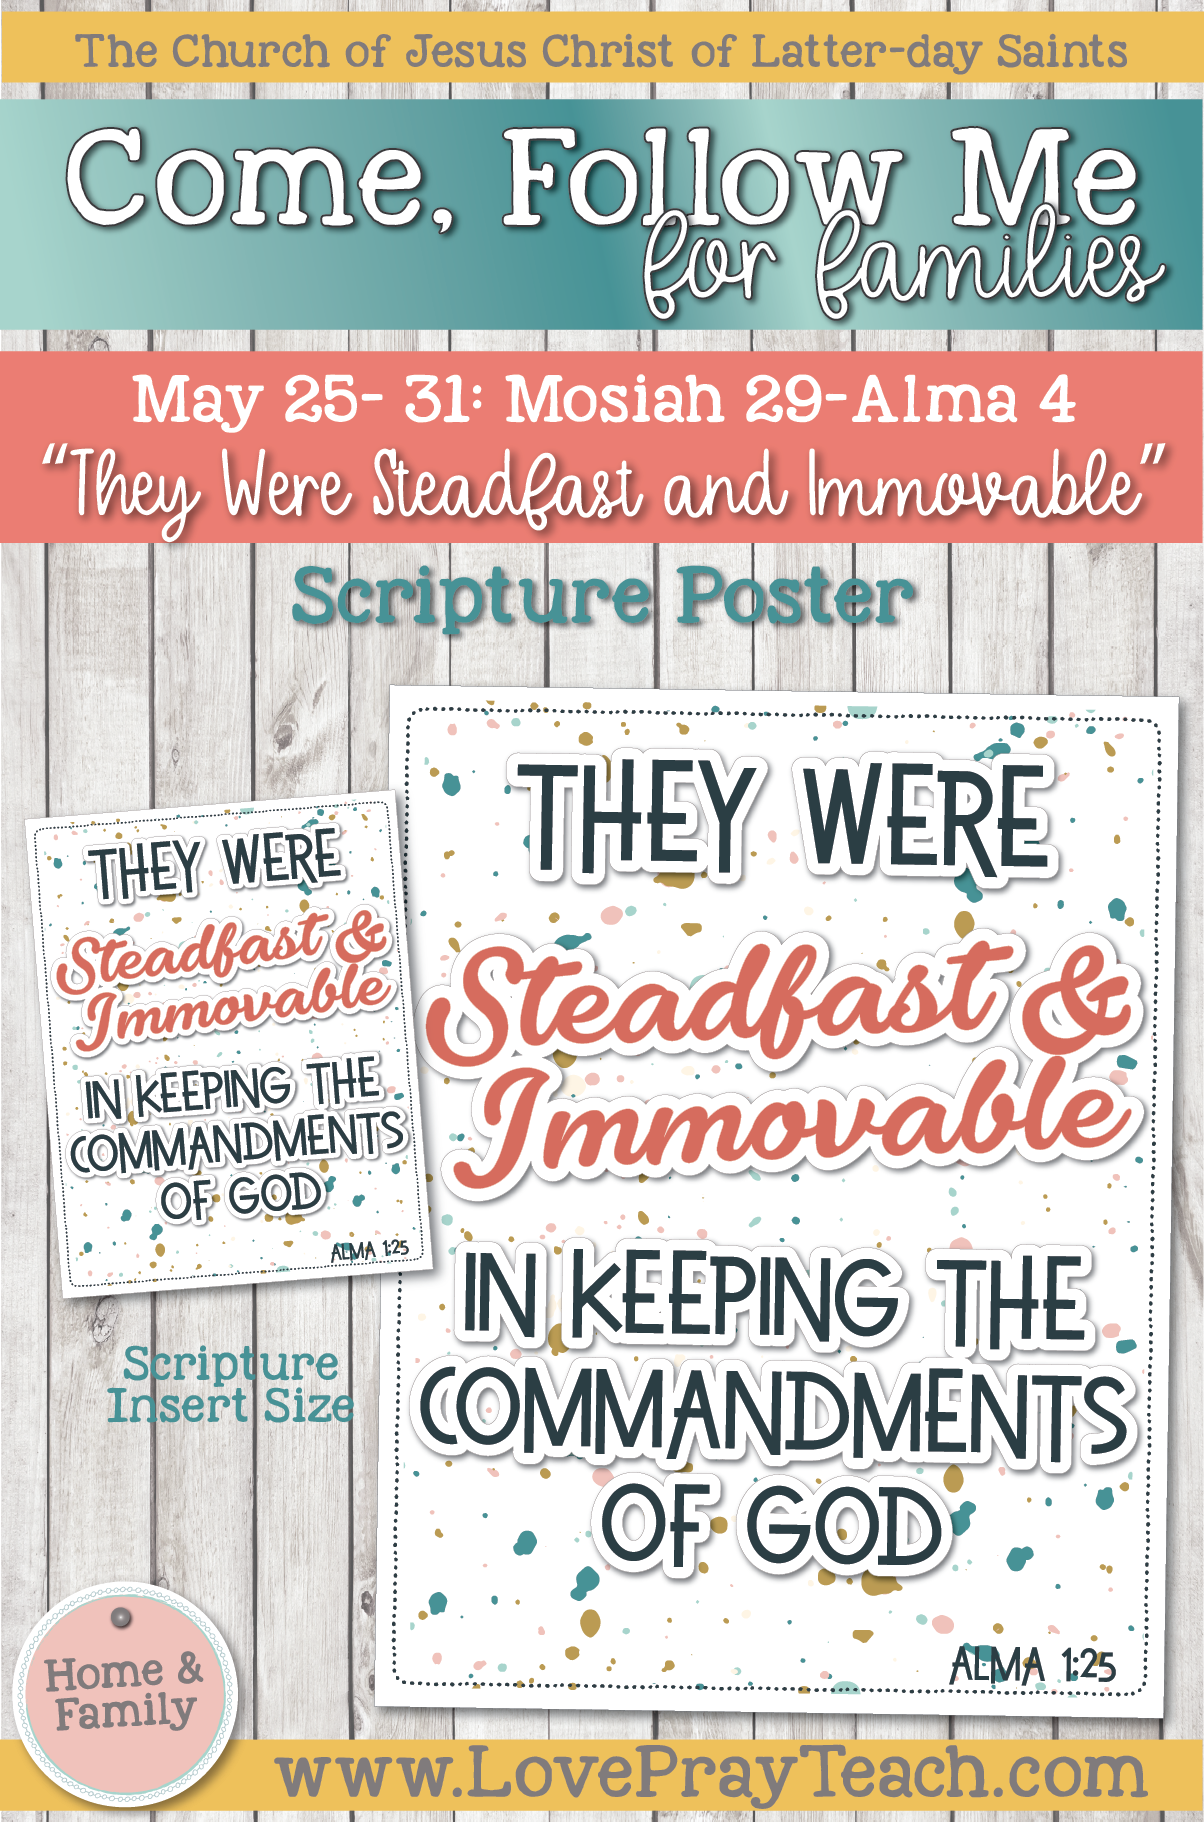 "Come, Follow Me—For Individuals and Families: Book of Mormon 2020 -May Week 5 -May 25– 31 Mosiah 29-Alma 4 ""They Were Steadfast and Immovable"""